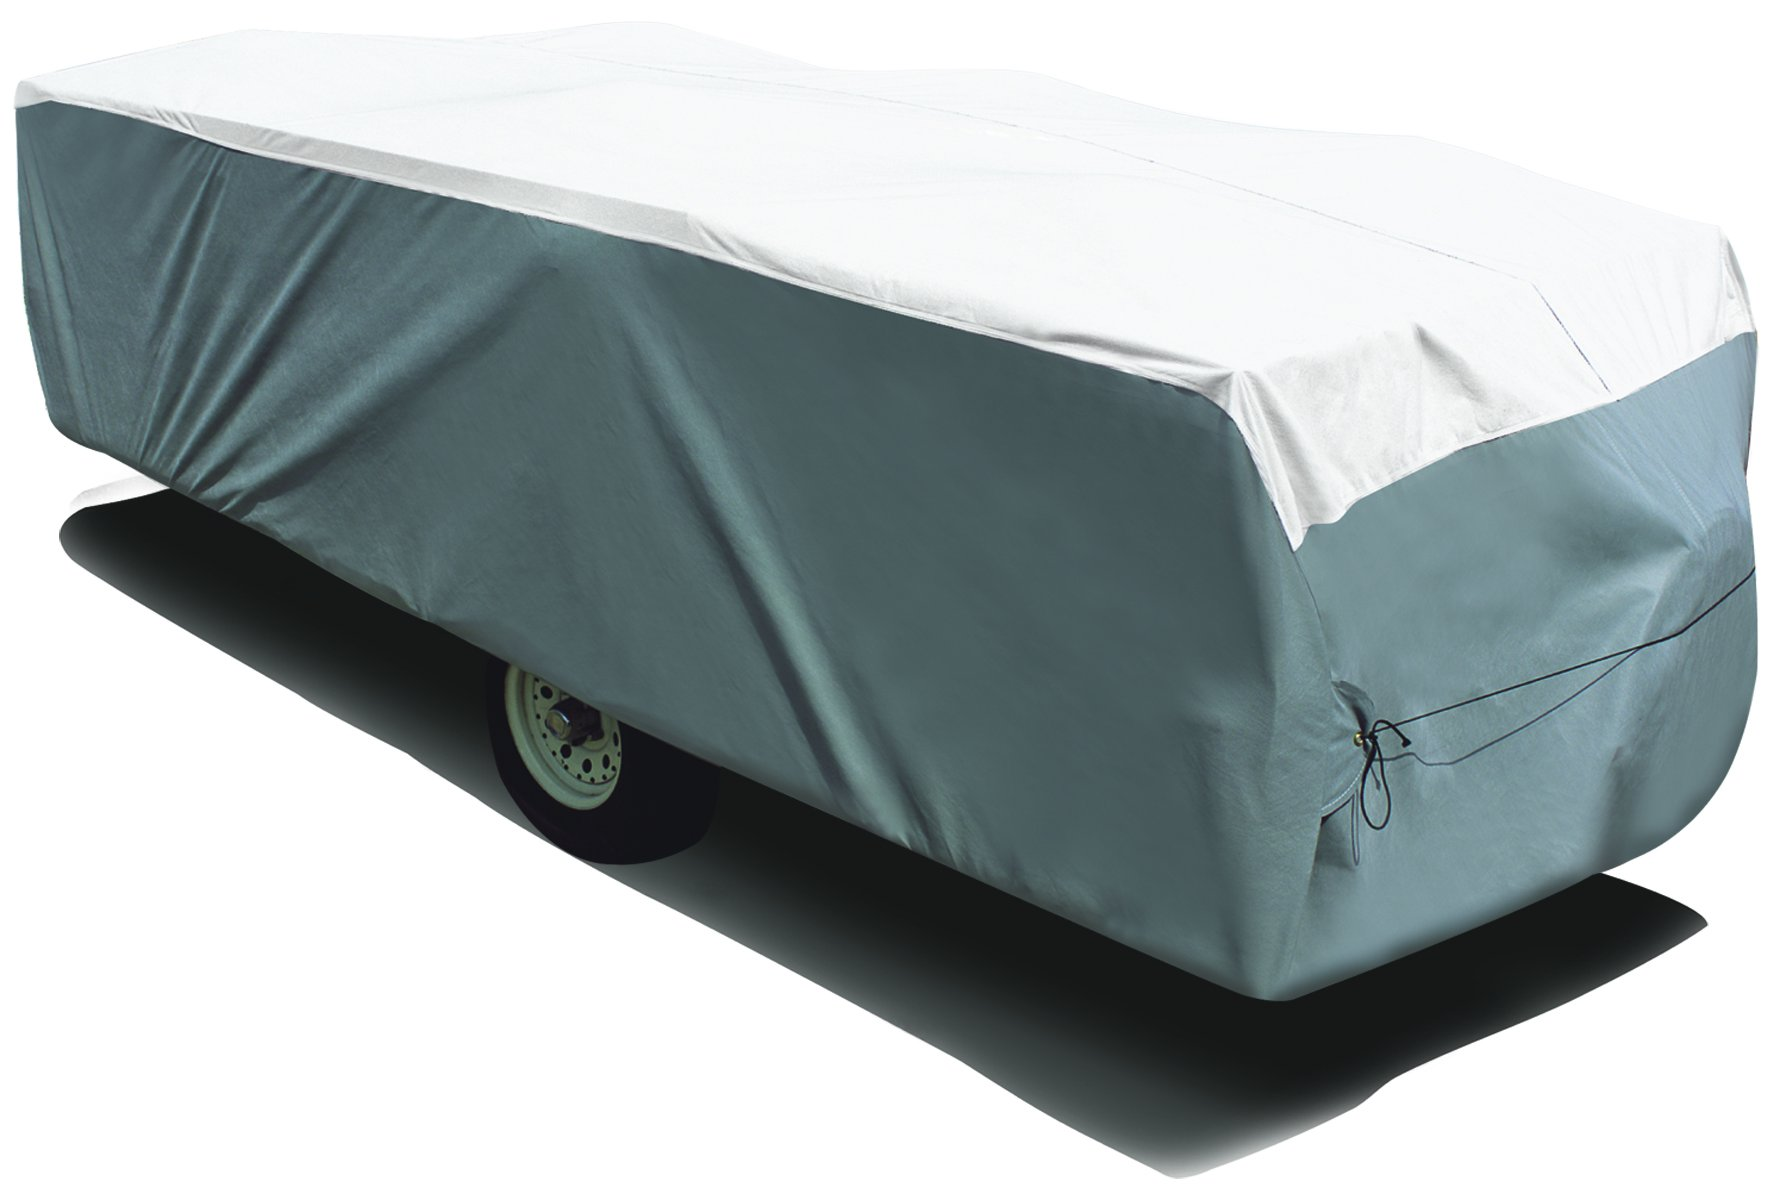 ADCO 22894 Pop Up Trailer Tyvek & Polypropylene Cover - 14'1'' to 16', Gray